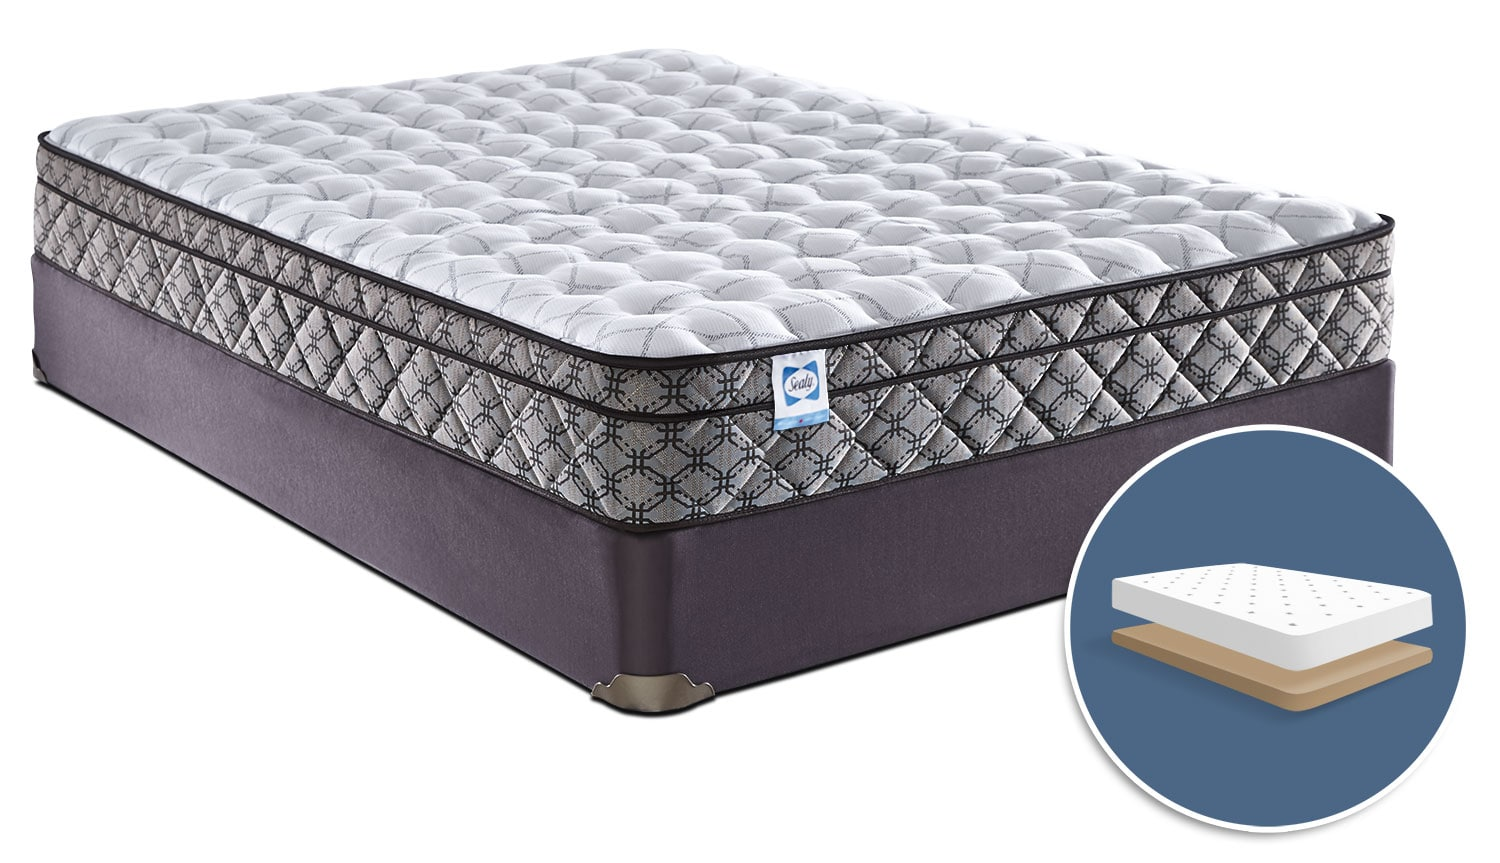 Mattresses and Bedding - Sealy Bellcroft Euro-Top Firm Twin Low-Profile Mattress Set